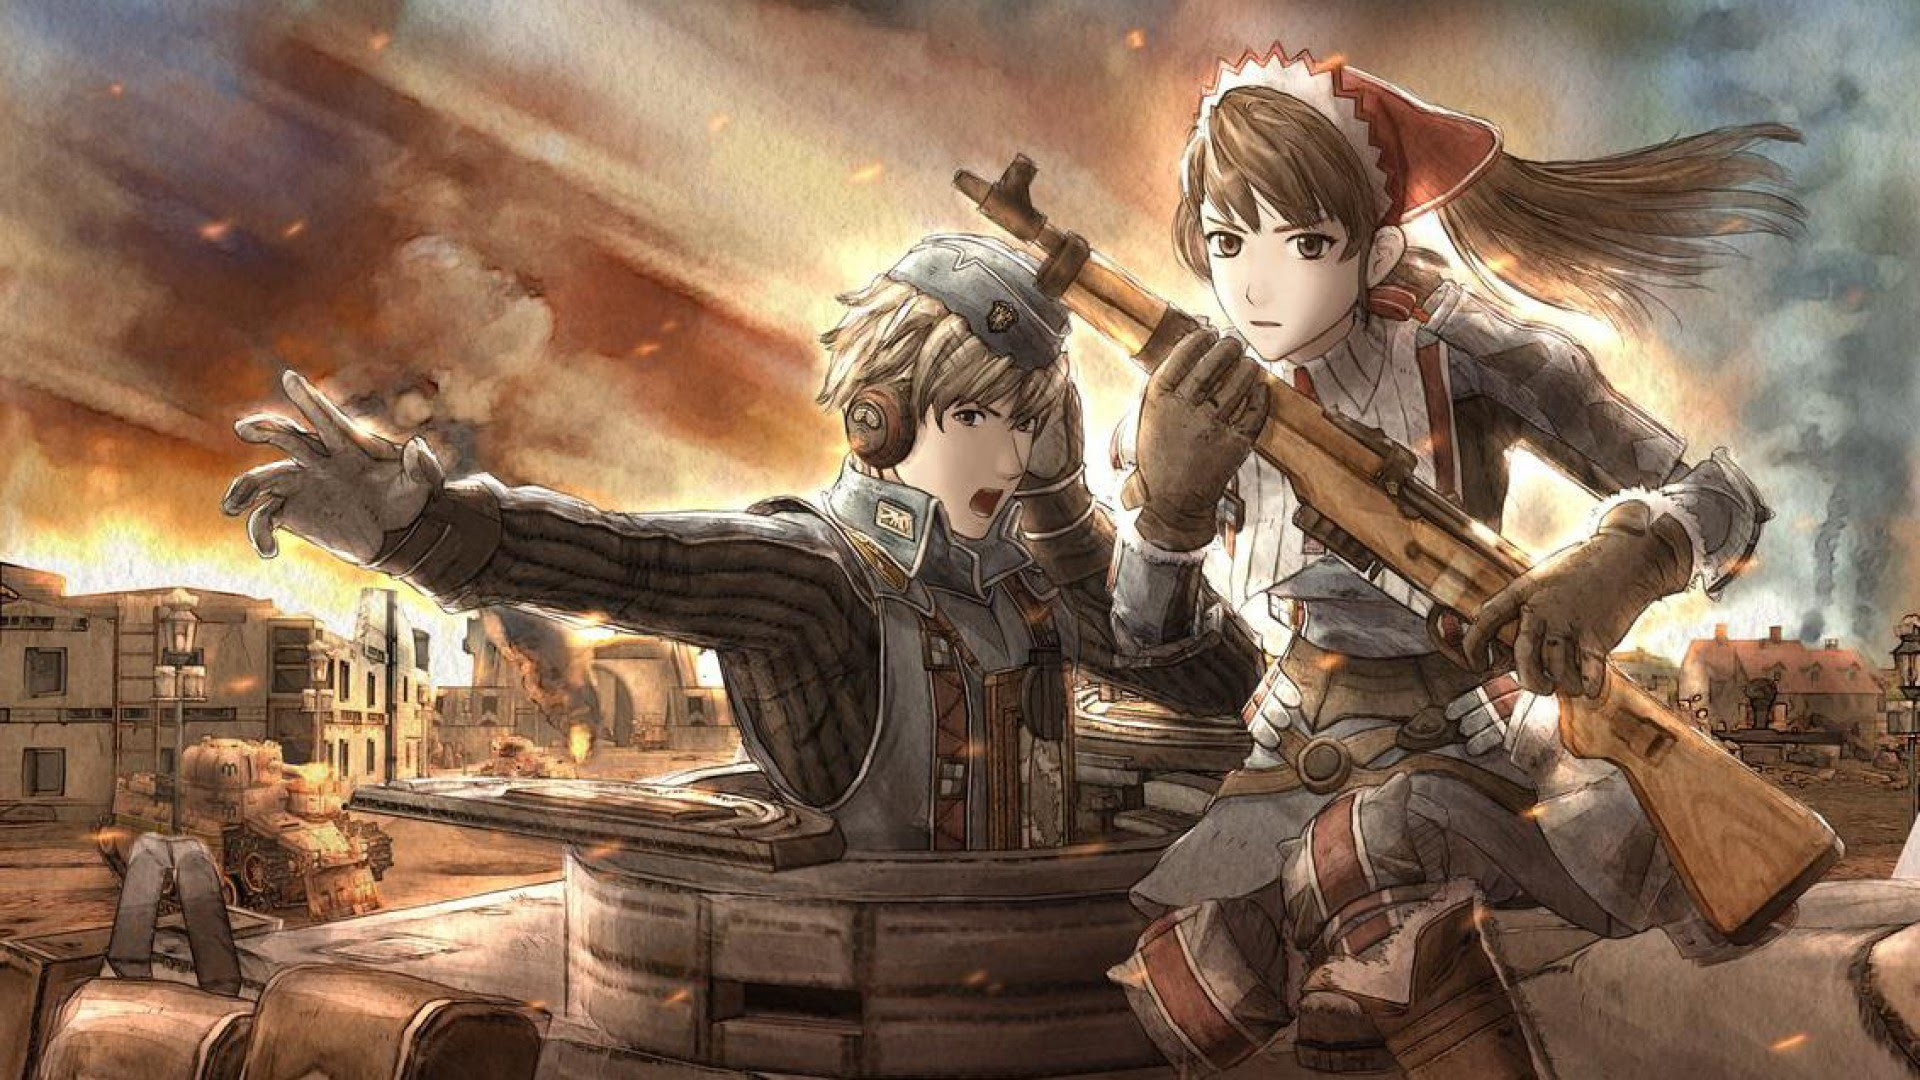 Fight Like A Girl Computer Wallpaper Valkyria Chronicles Wallpaper 183 ① Download Free Cool